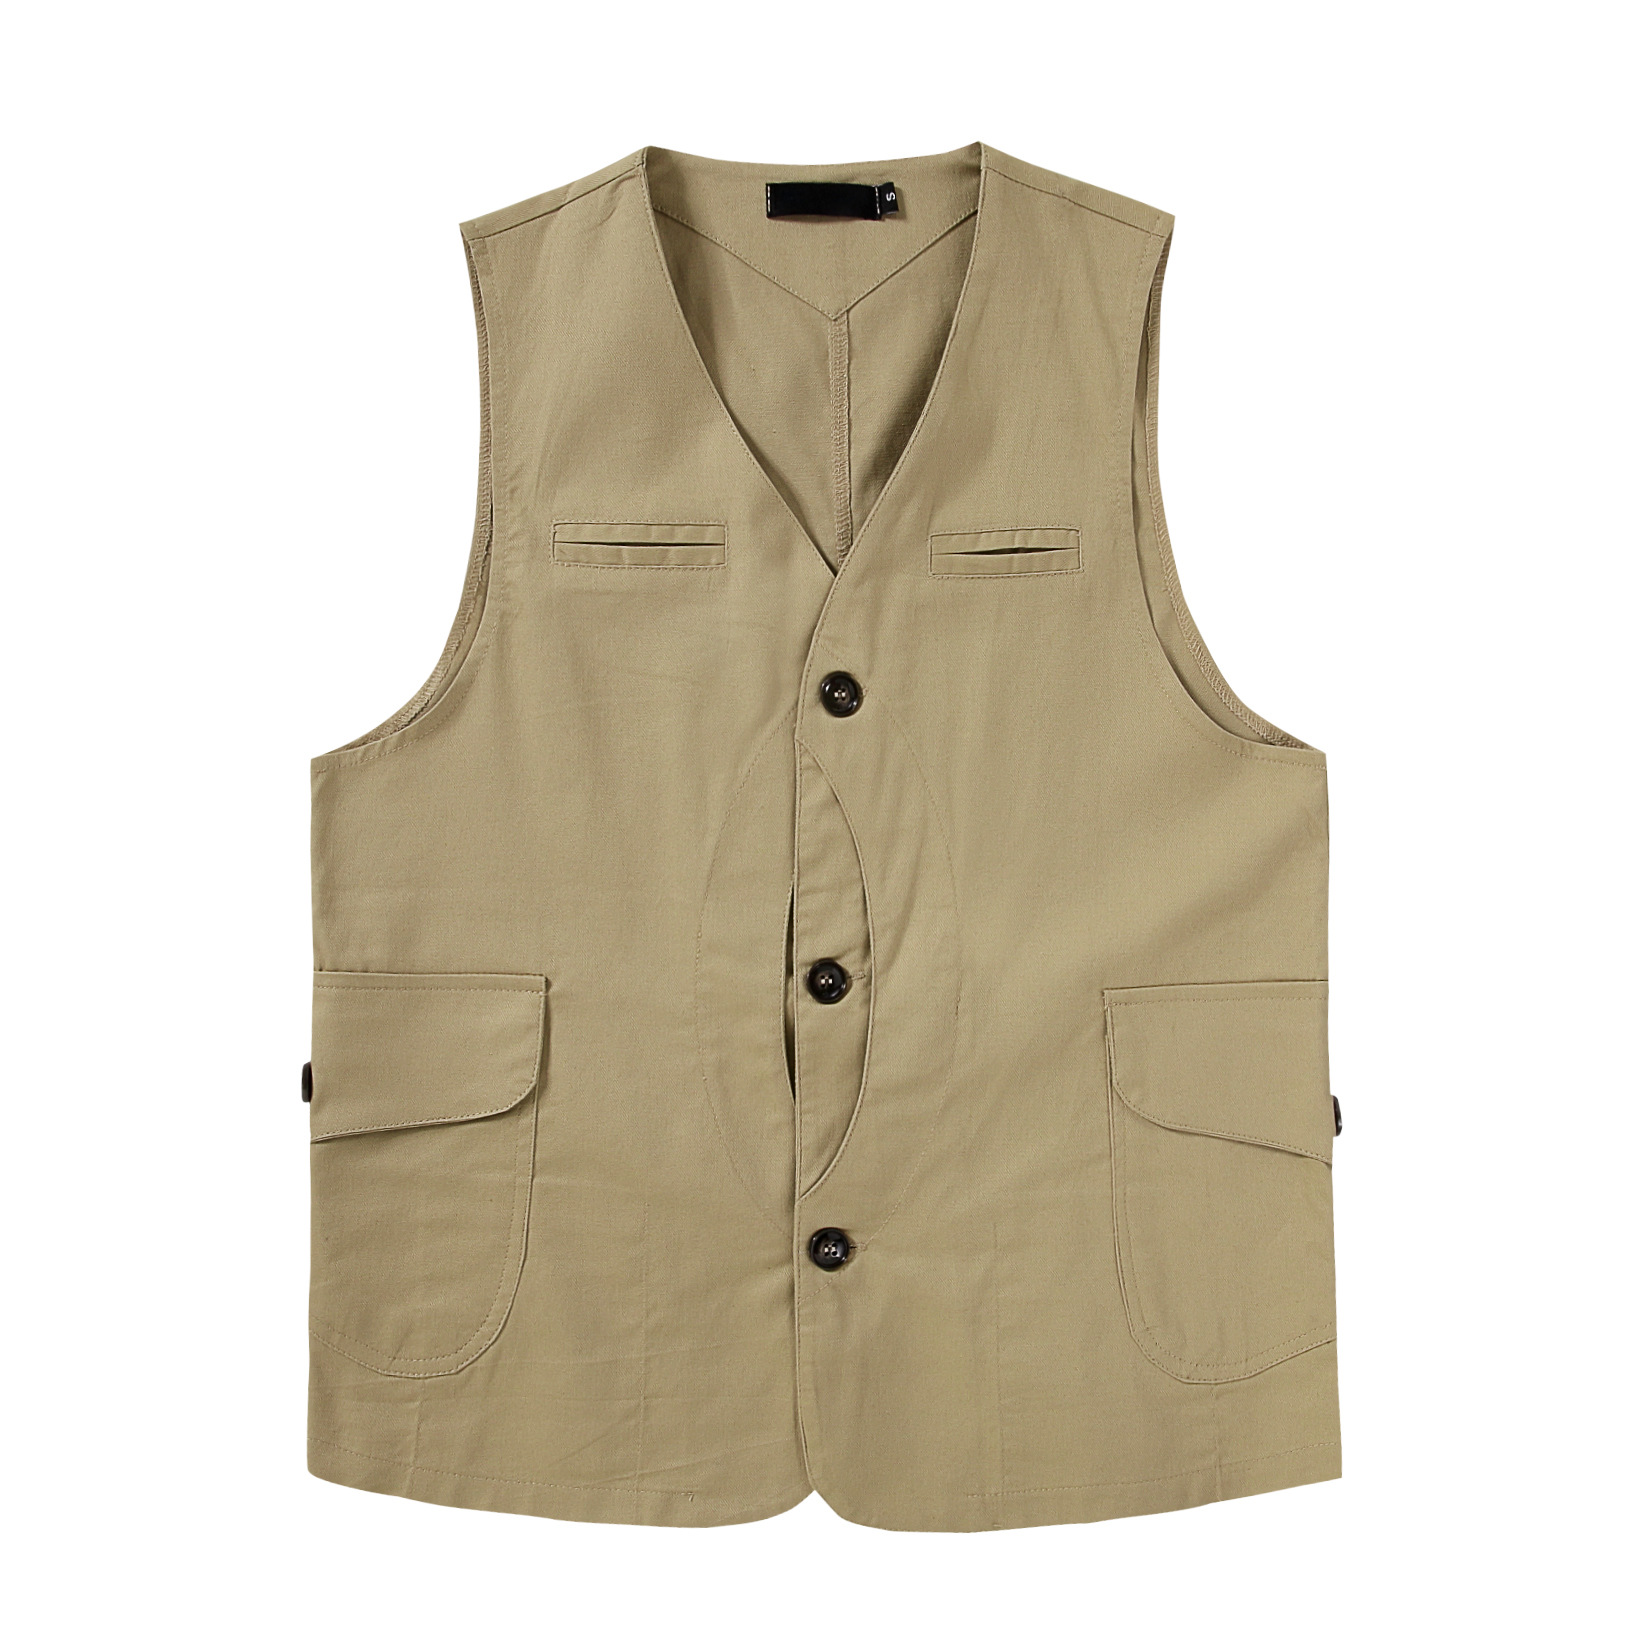 2020 Brand Men Casual Loose Vintage Vest Japan Amekaji Fashion Pocket Sleeveless Cargo Jacket Tops Waistcoat S-XXL